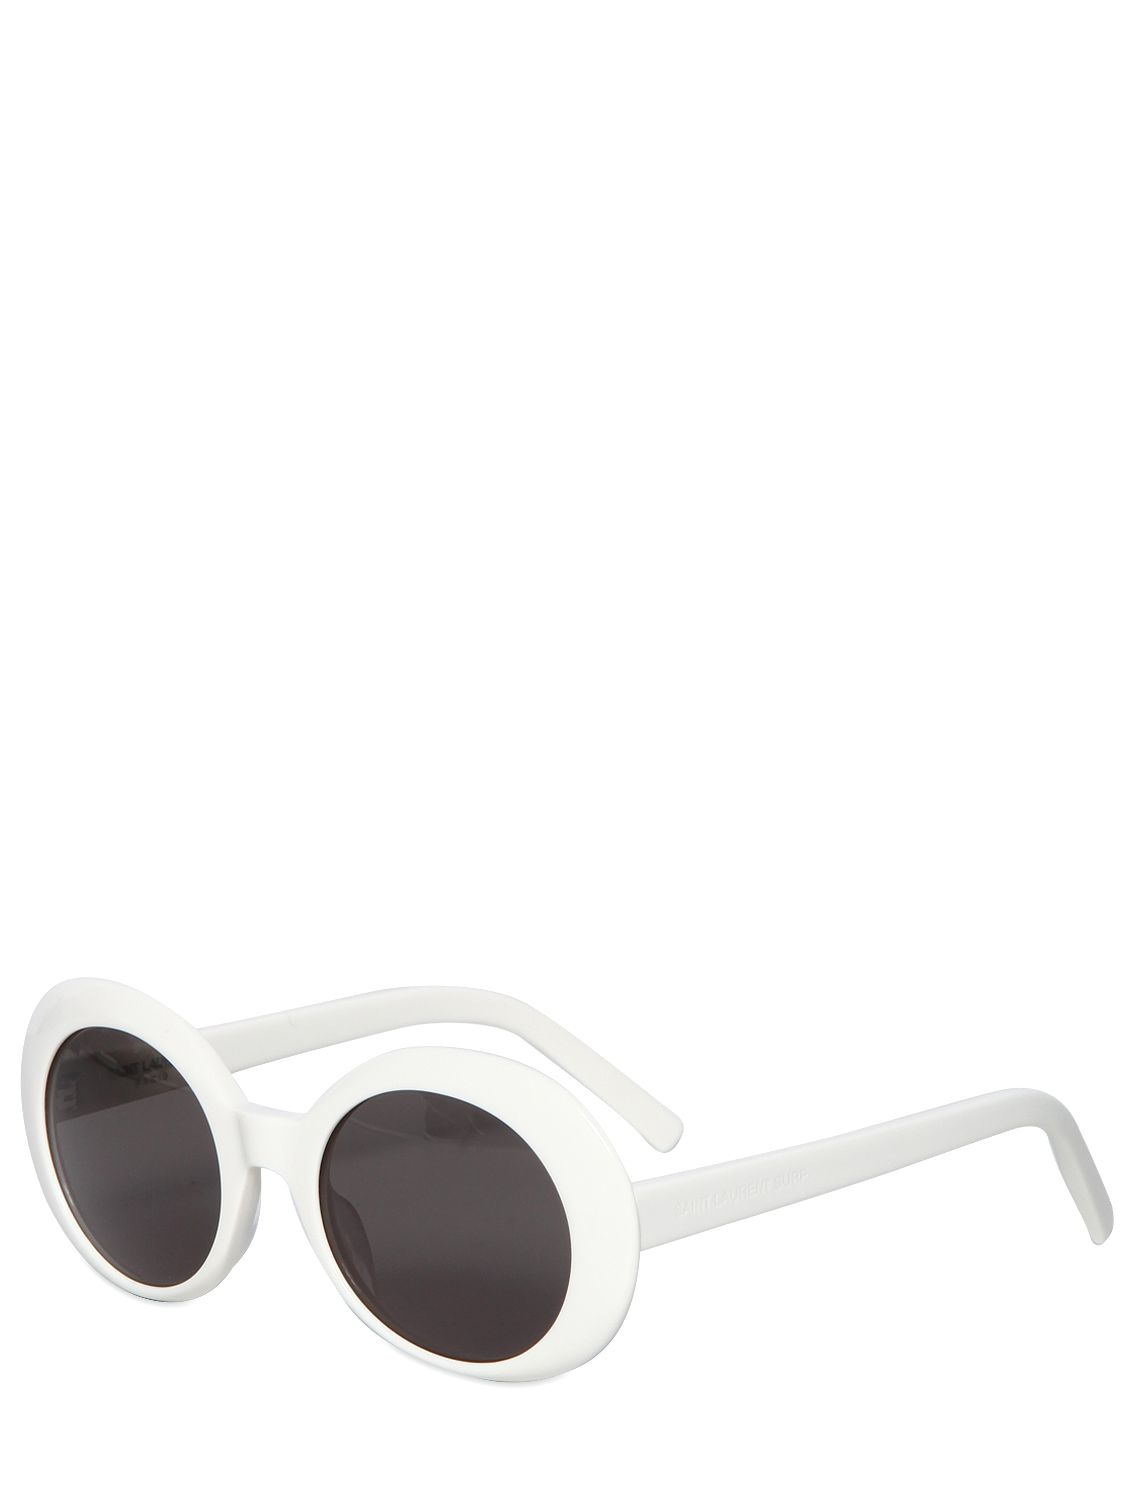 935fe3f1763 Lyst - Saint Laurent Sl 98 Shiny Acetate Round Sunglasses in White ...